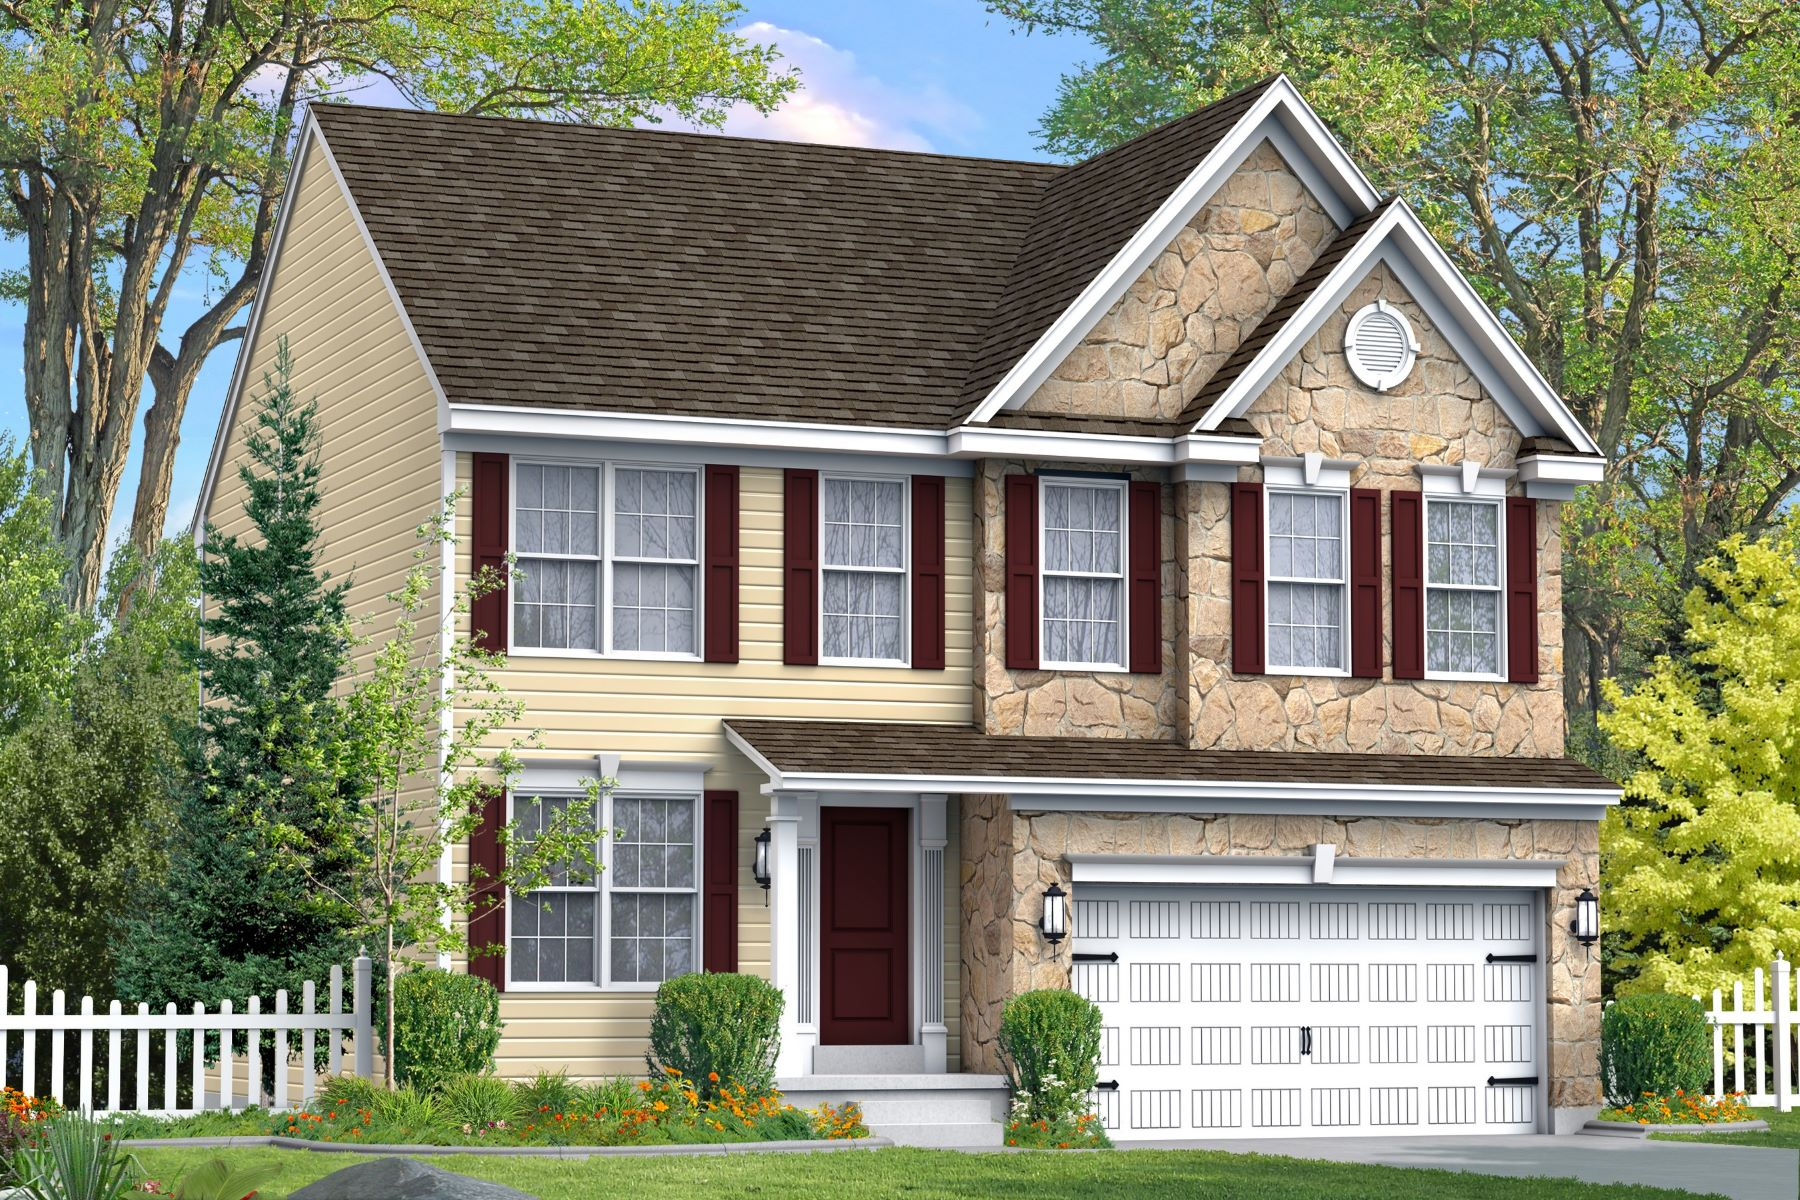 Single Family Homes for Sale at Briarcliff New Construction Colonial 555 Sandpiper Lane, New Cumberland, Pennsylvania 17070 United States